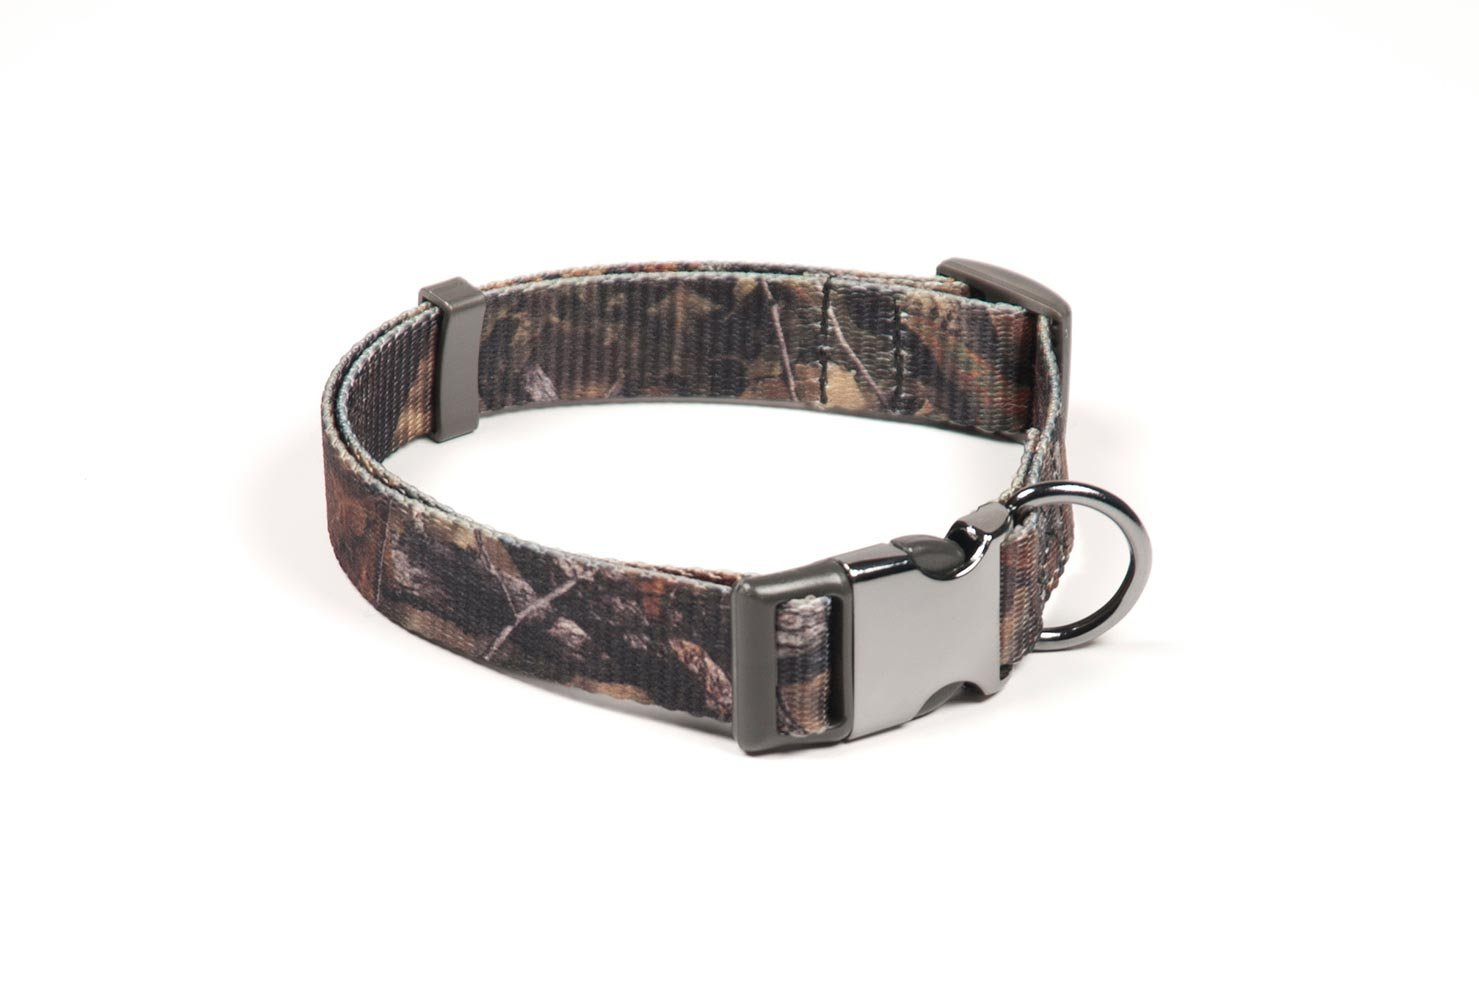 Pet Champion Hunting No Pull Extra Durable Adjustable Dog Collar, Mossy Oak Camo, Large/Extra Large 1in x 16-26in